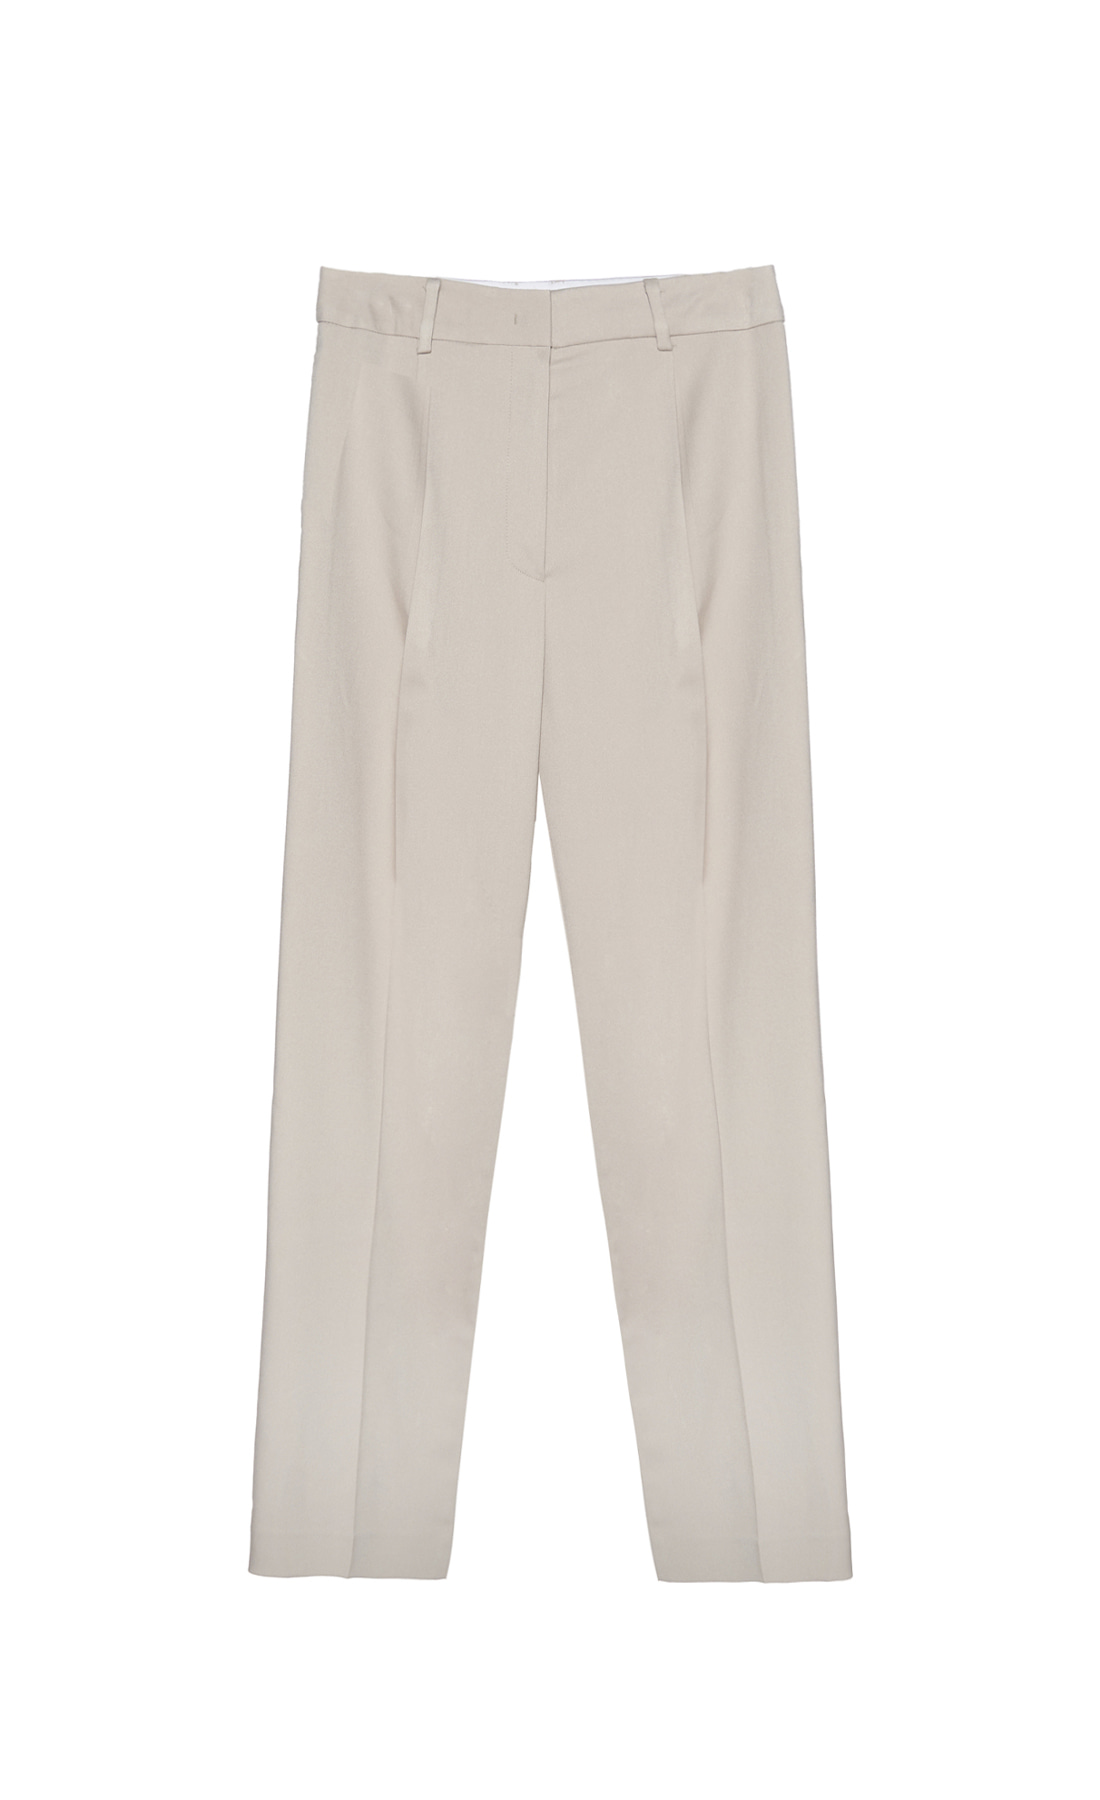 WIDE STRAIGHT TUCK PANTS